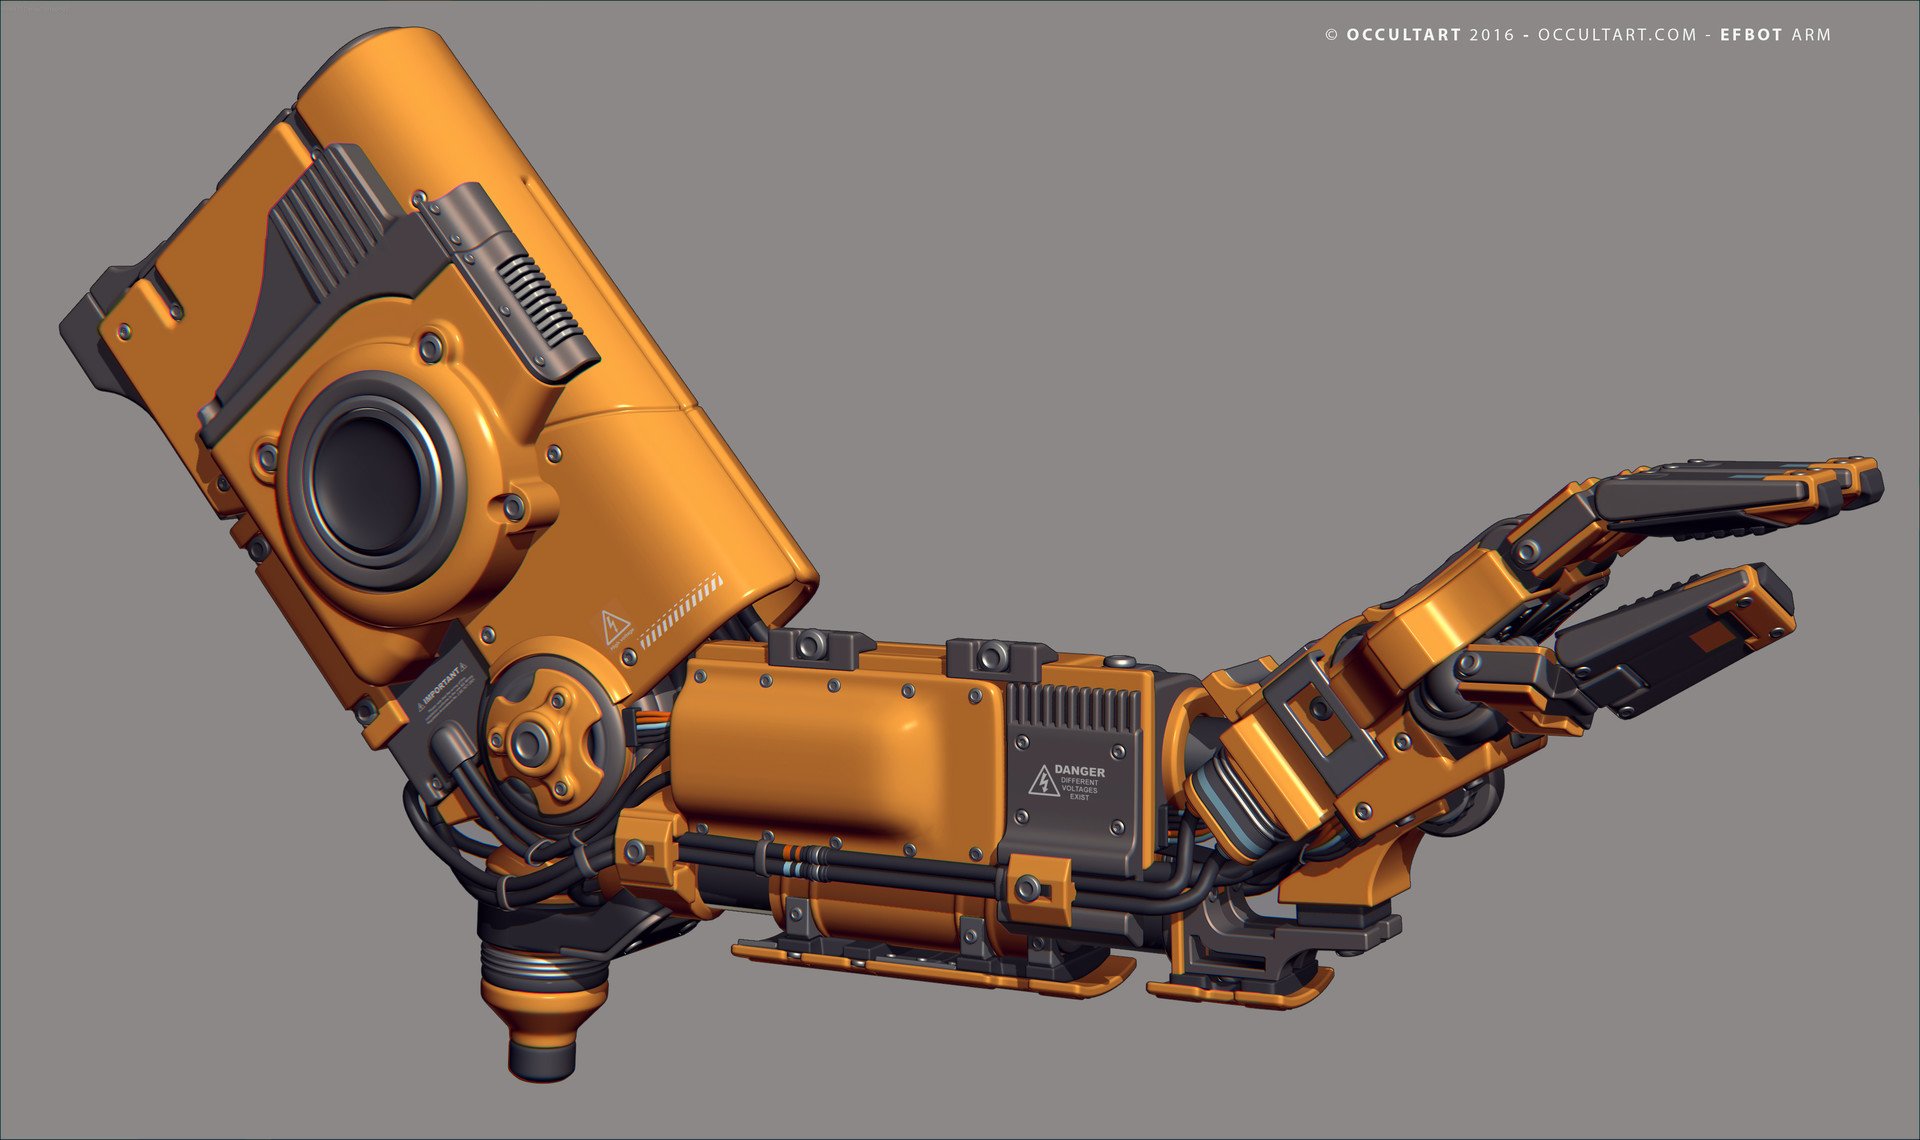 Occultart   occultart efbot yellow arm 12